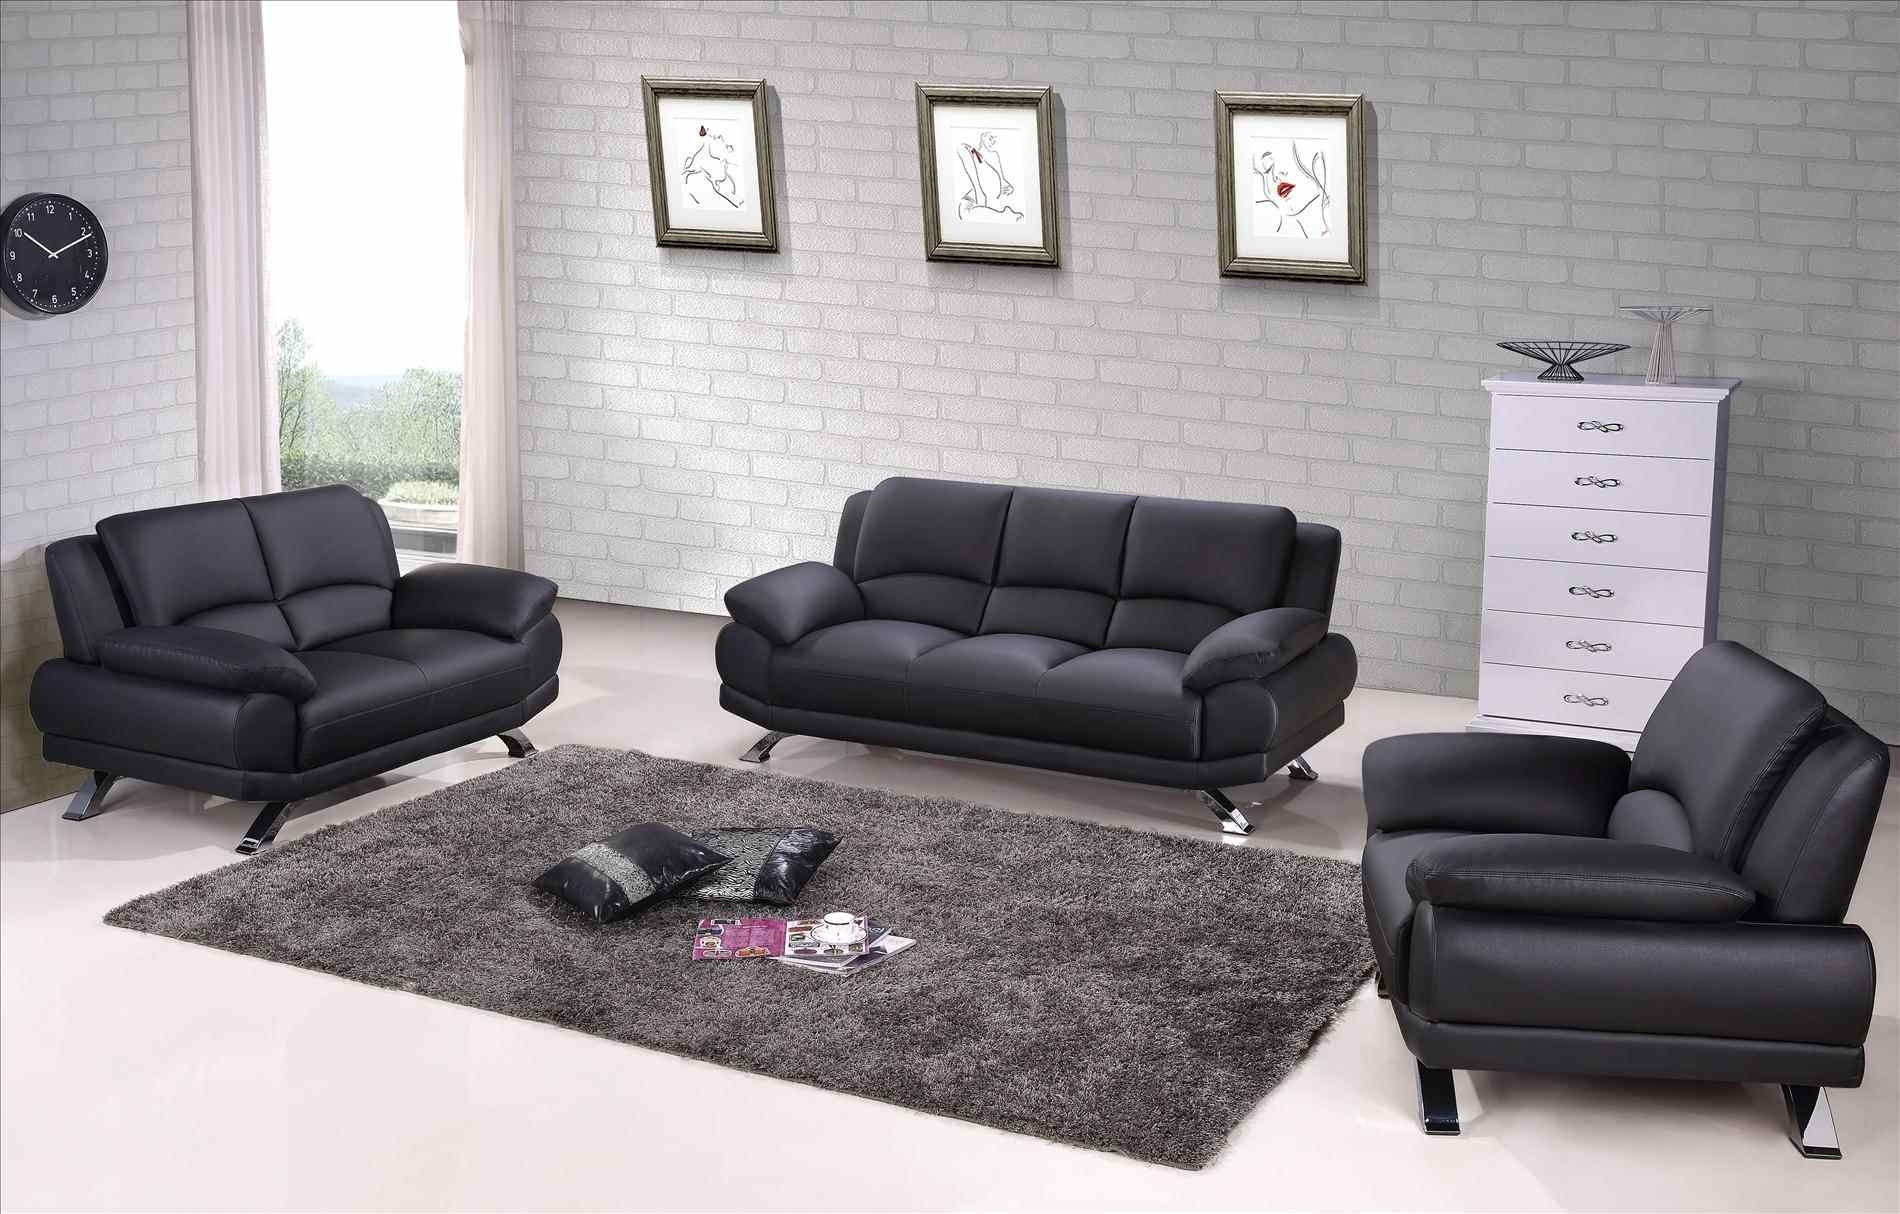 Couch : Genuine Leather Couches Kramfors Lshape Sectional Youtube in Nj Sectional Sofas (Image 3 of 10)